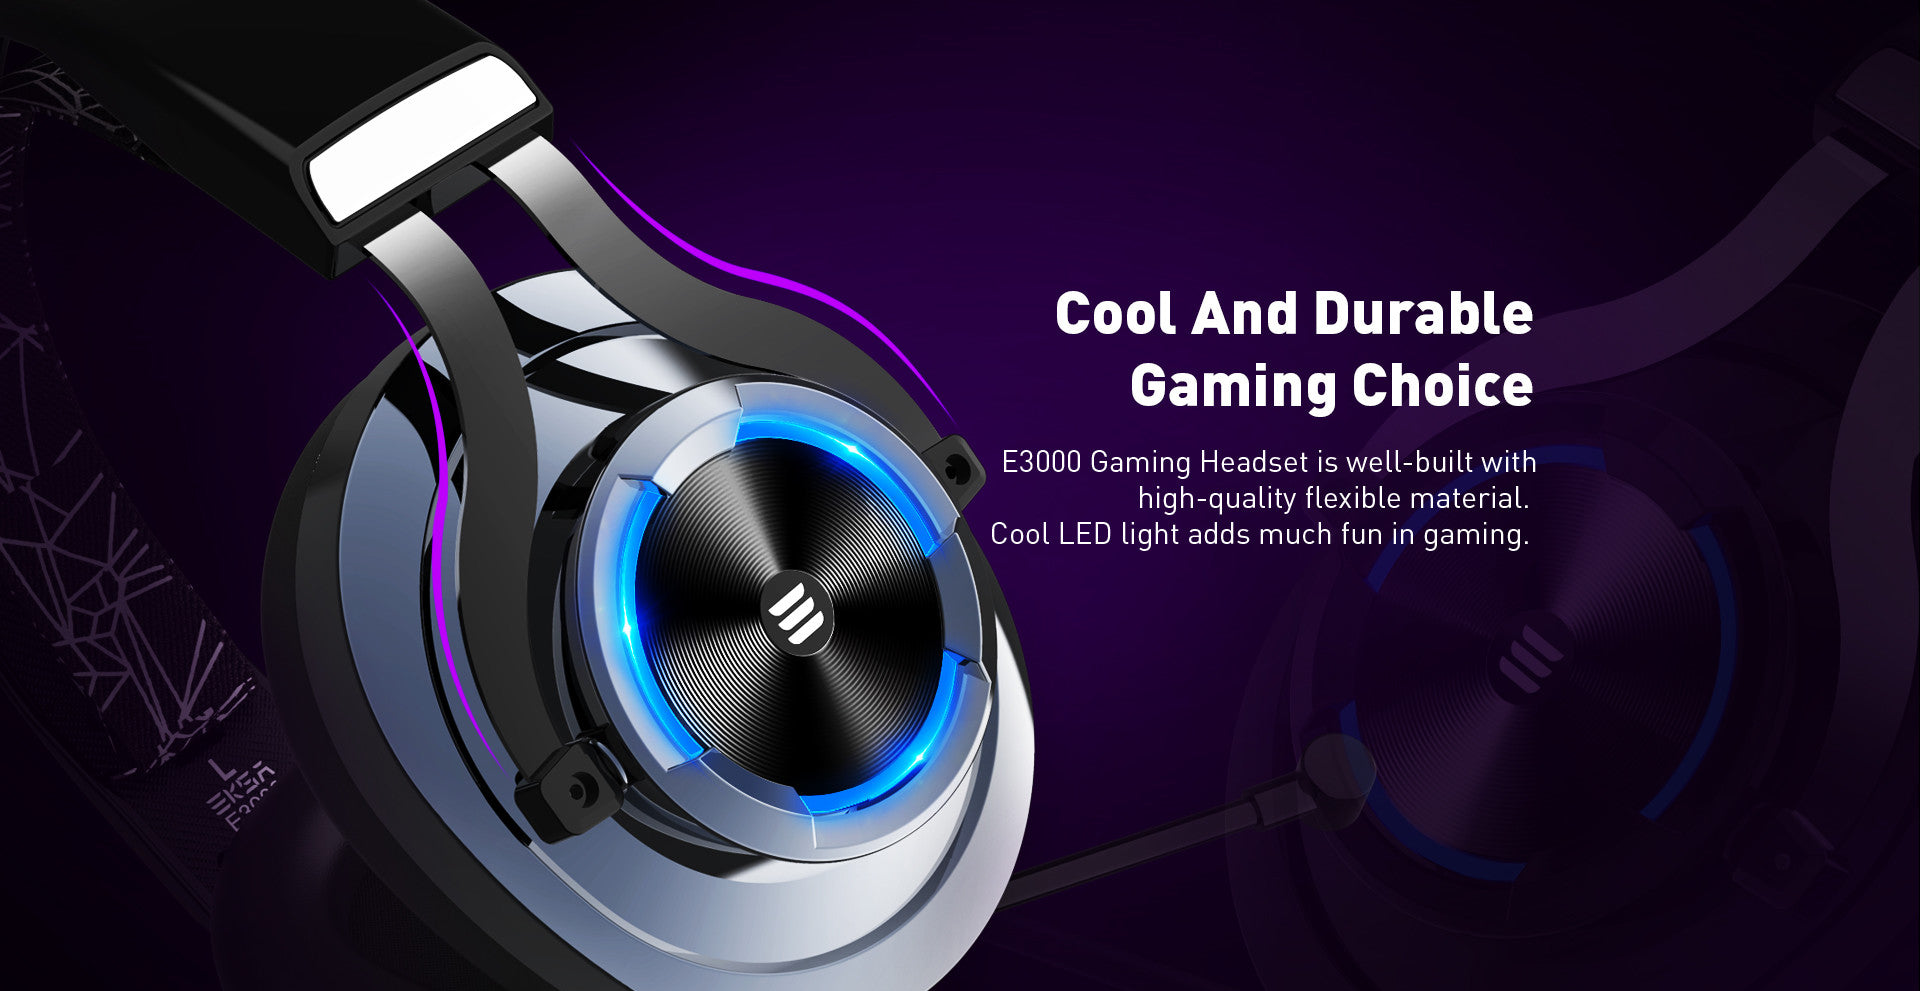 E3000 Gaming Headset is well-built with high-quality flexible material. E3000's cool LED light adds much fun in gaming.